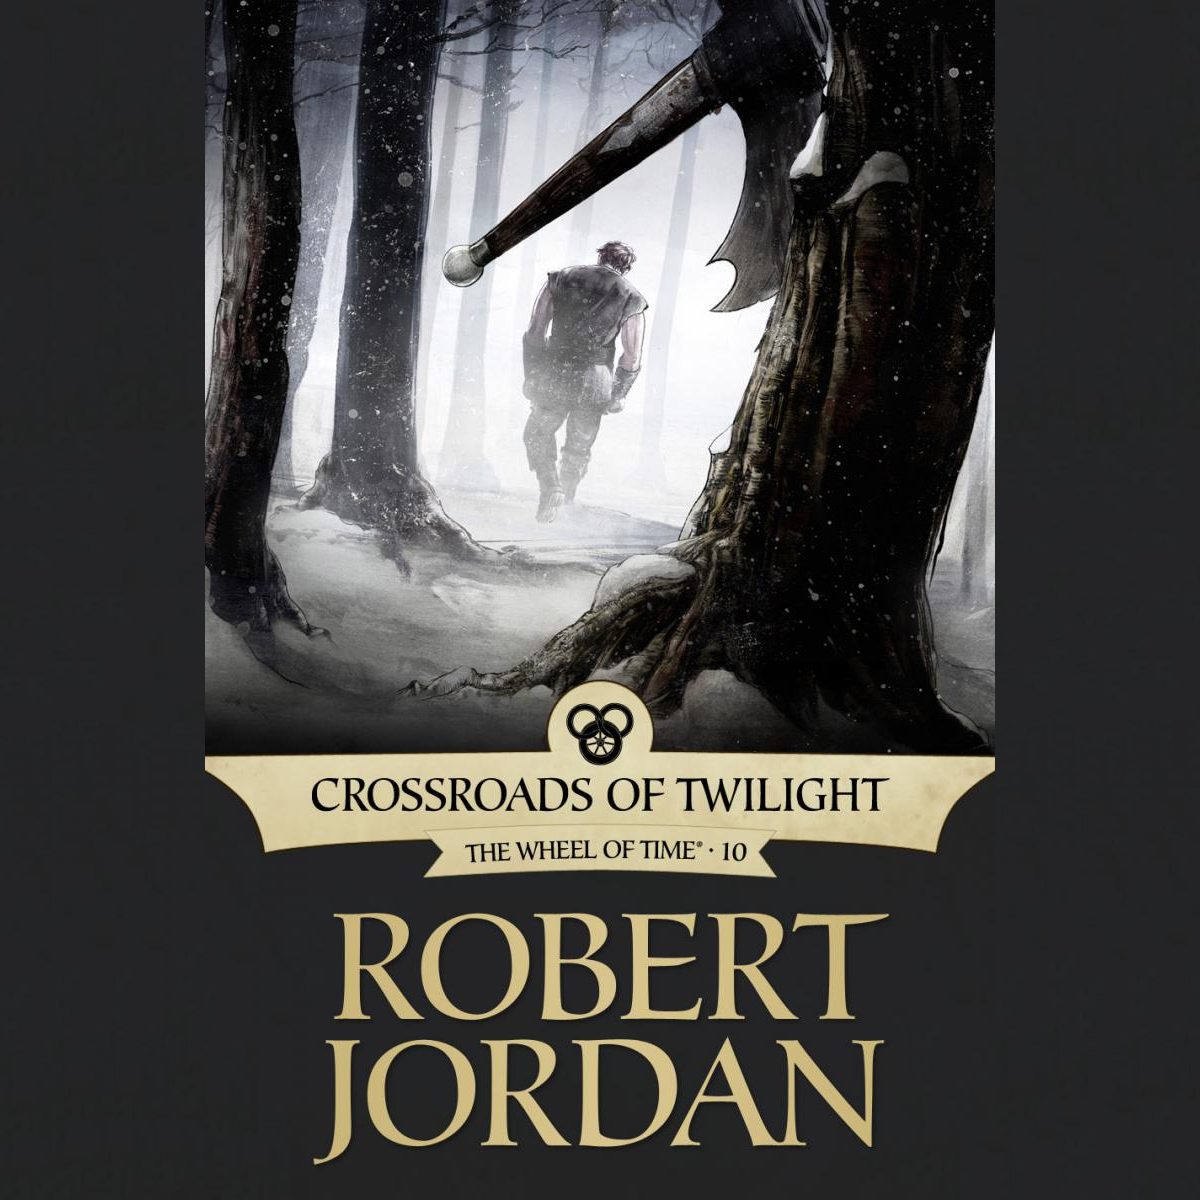 The Wheel Of Time #10: Crossroads Of Twilight